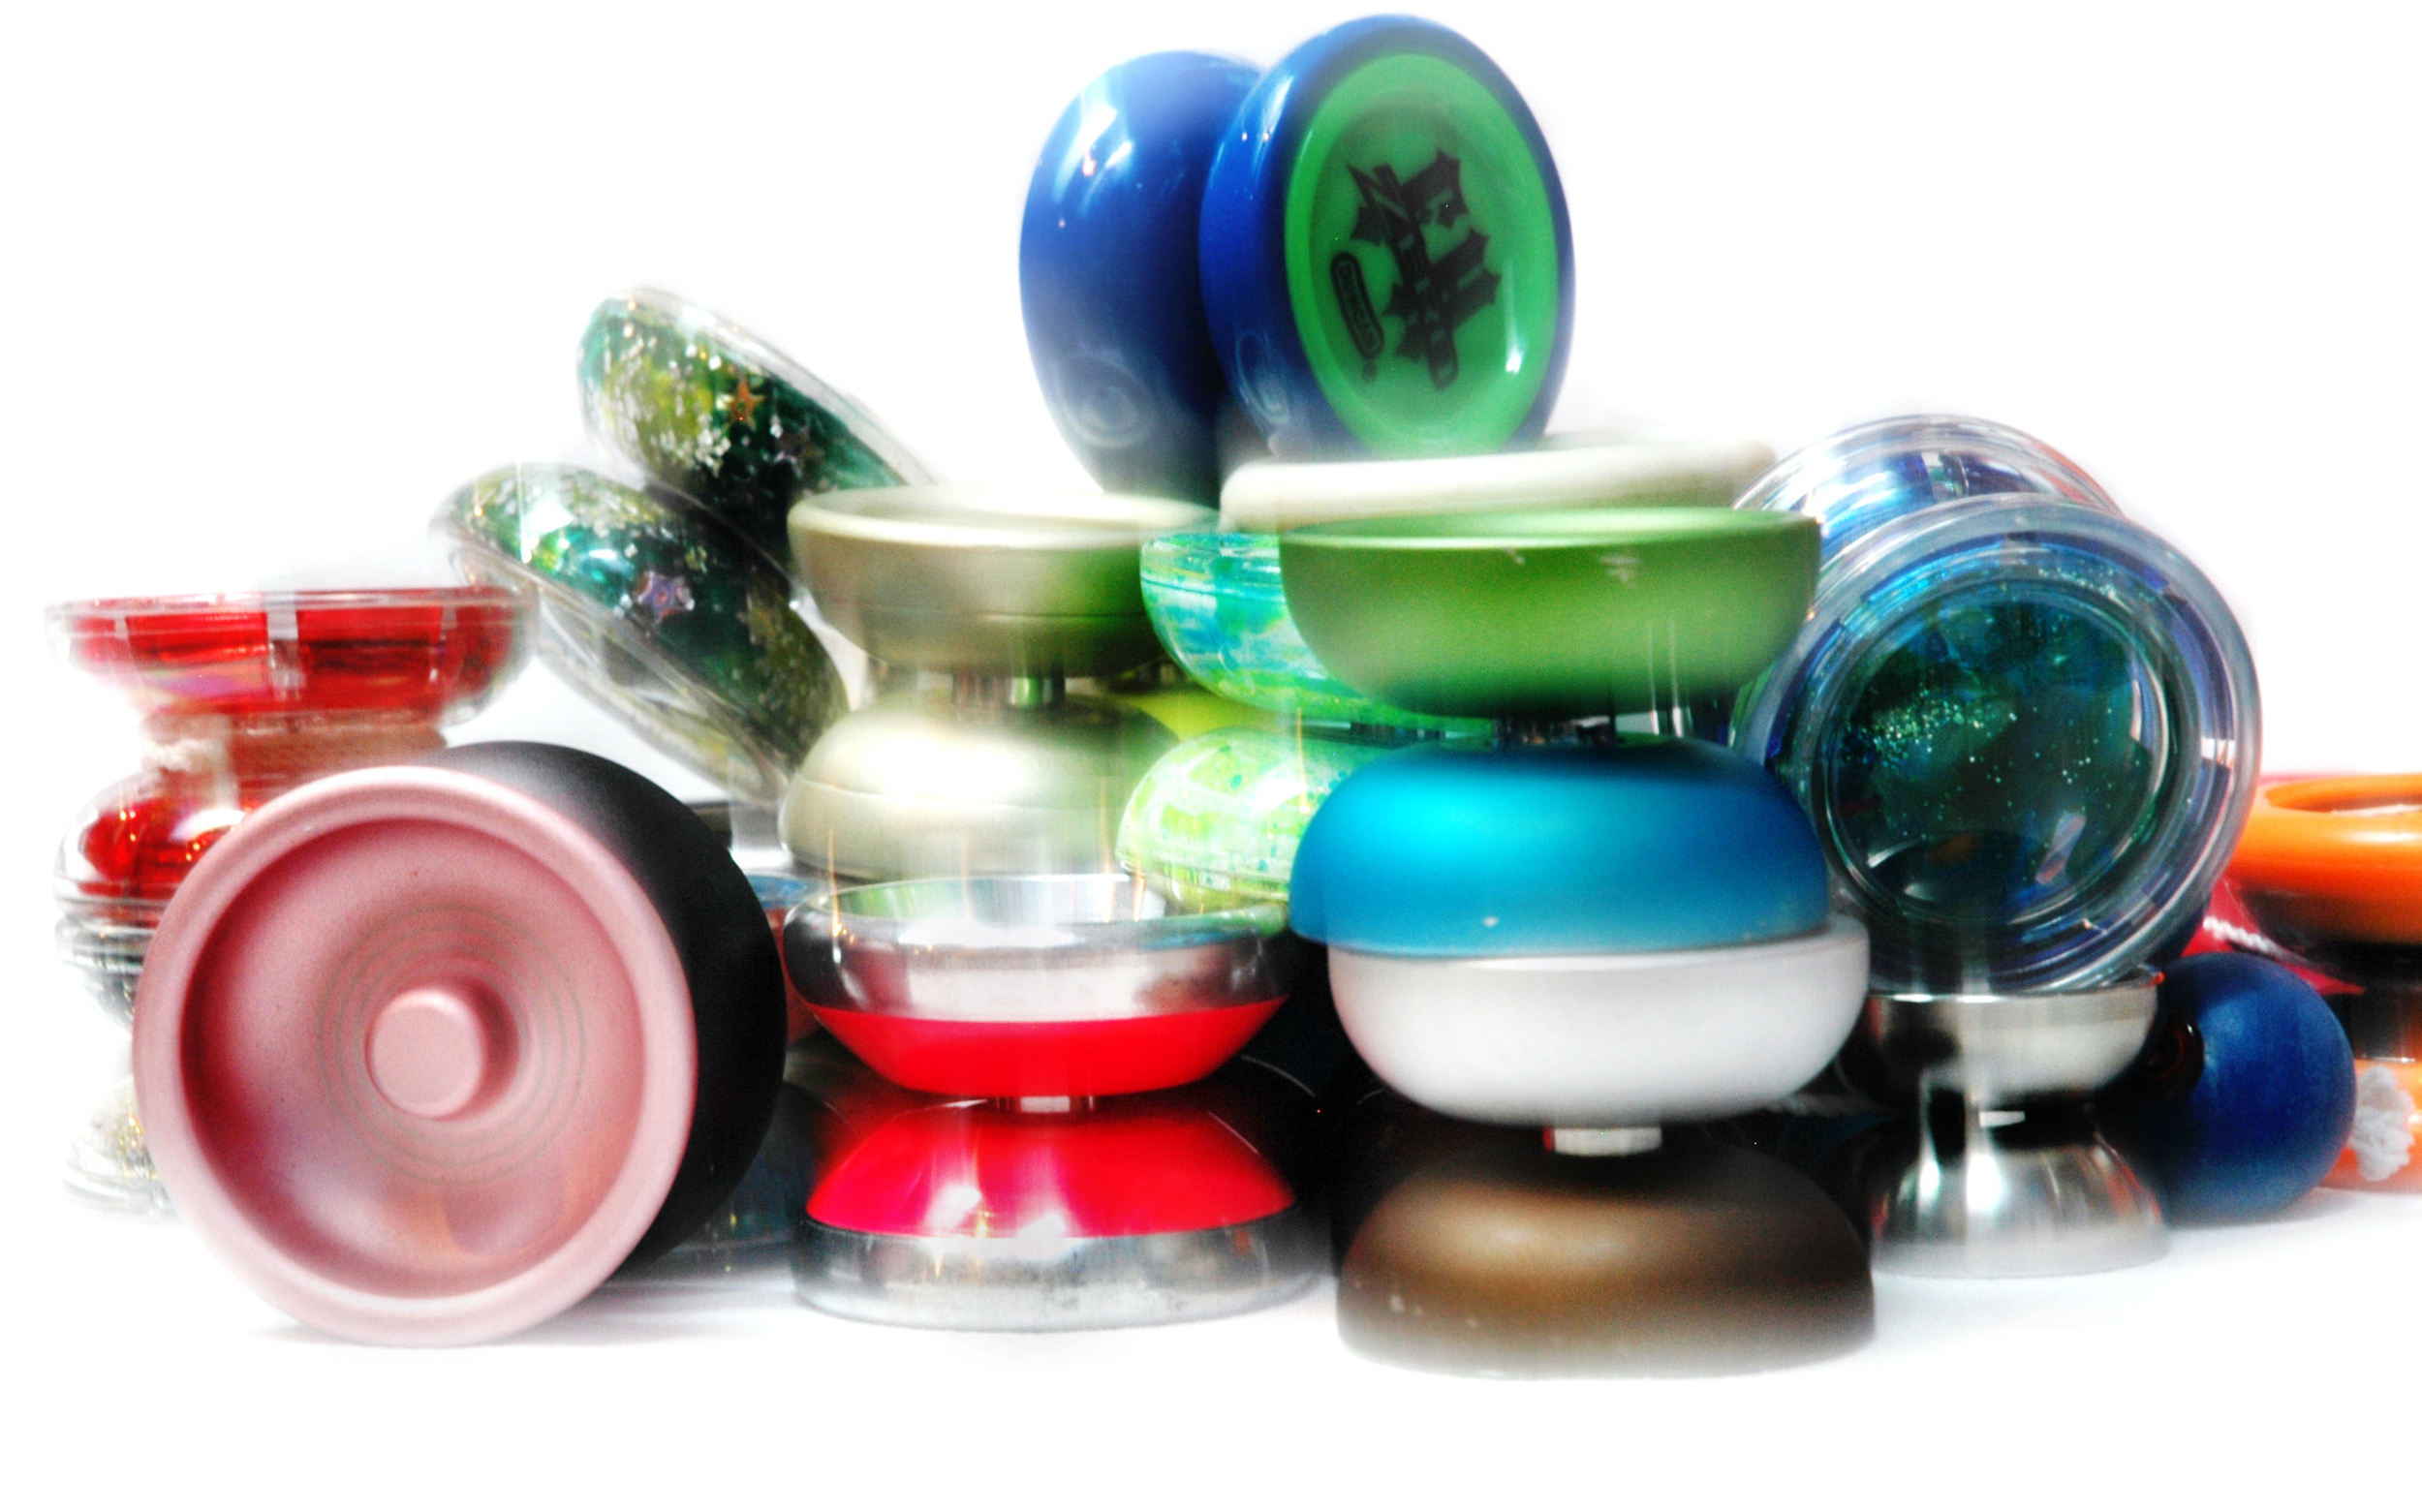 This photo from Flickr showcases yo-yos of various shapes, sizes andcolors. (Photo credited to S. J. Pyrotechnic via https://creativecommons.org/licenses/by-sa/2.0/ .